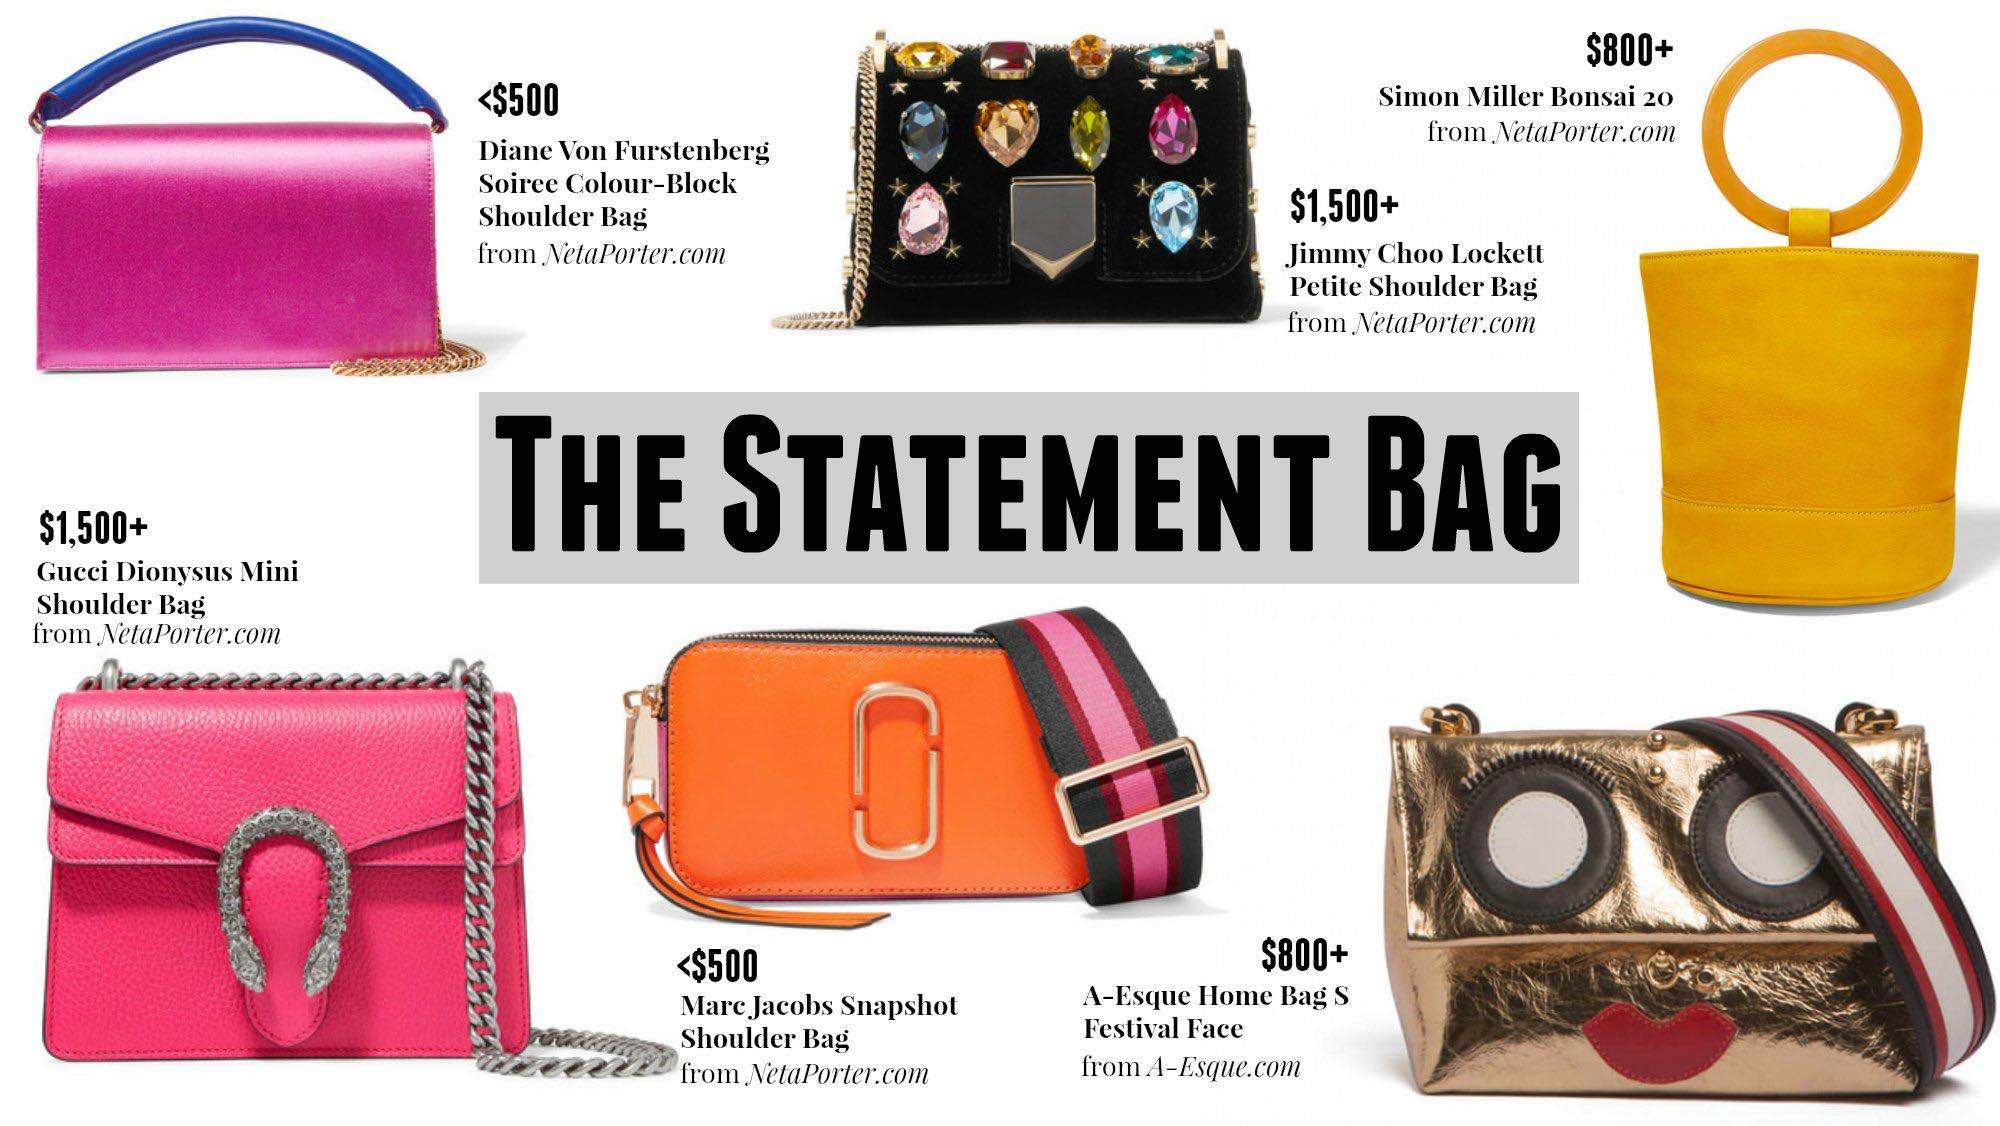 The Statement Bag